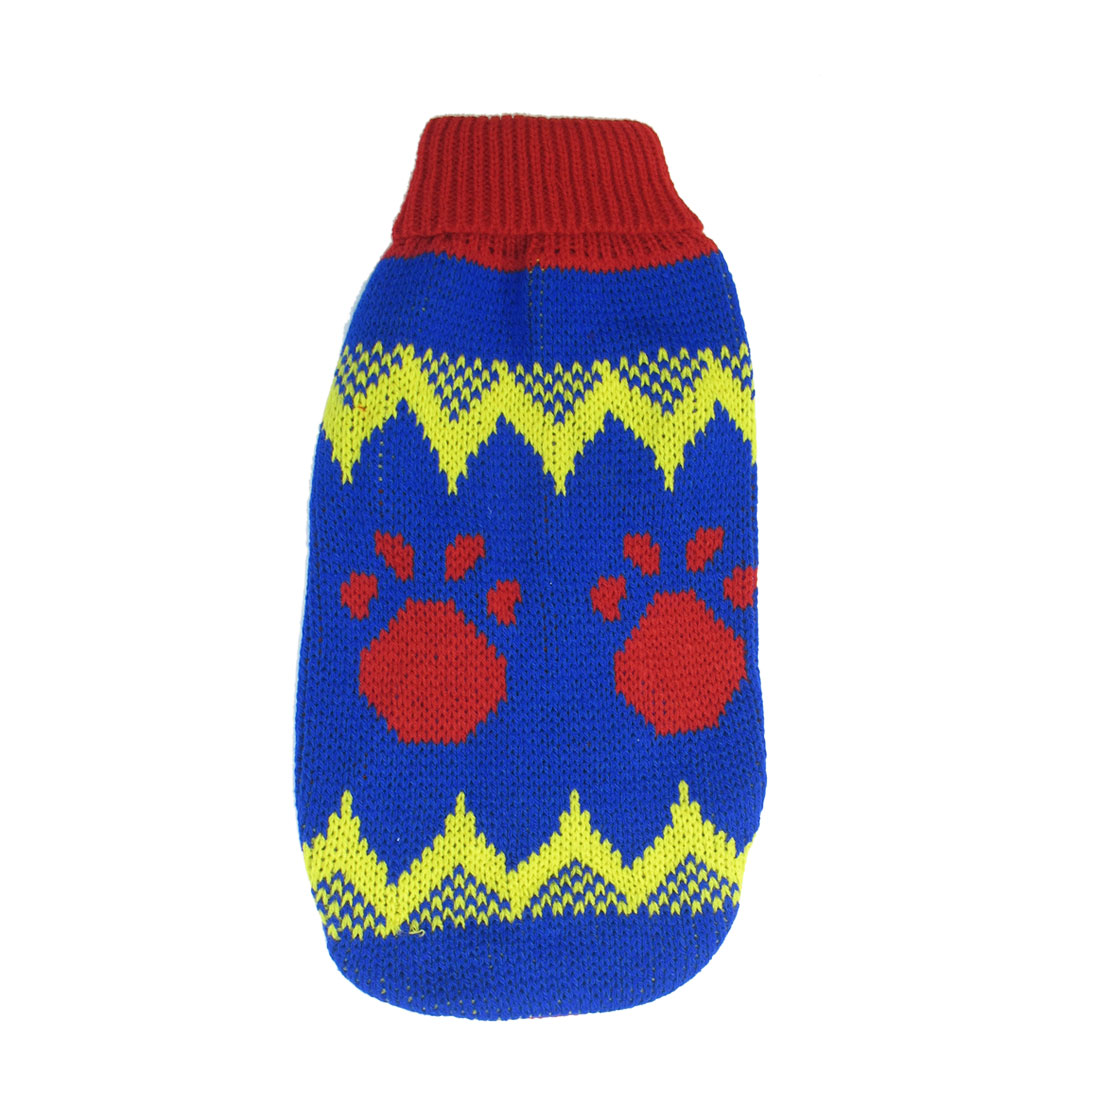 Blue Red Yellow Pawprint Print Pet Chihuahua Sleeves Sweater Apparel Size S